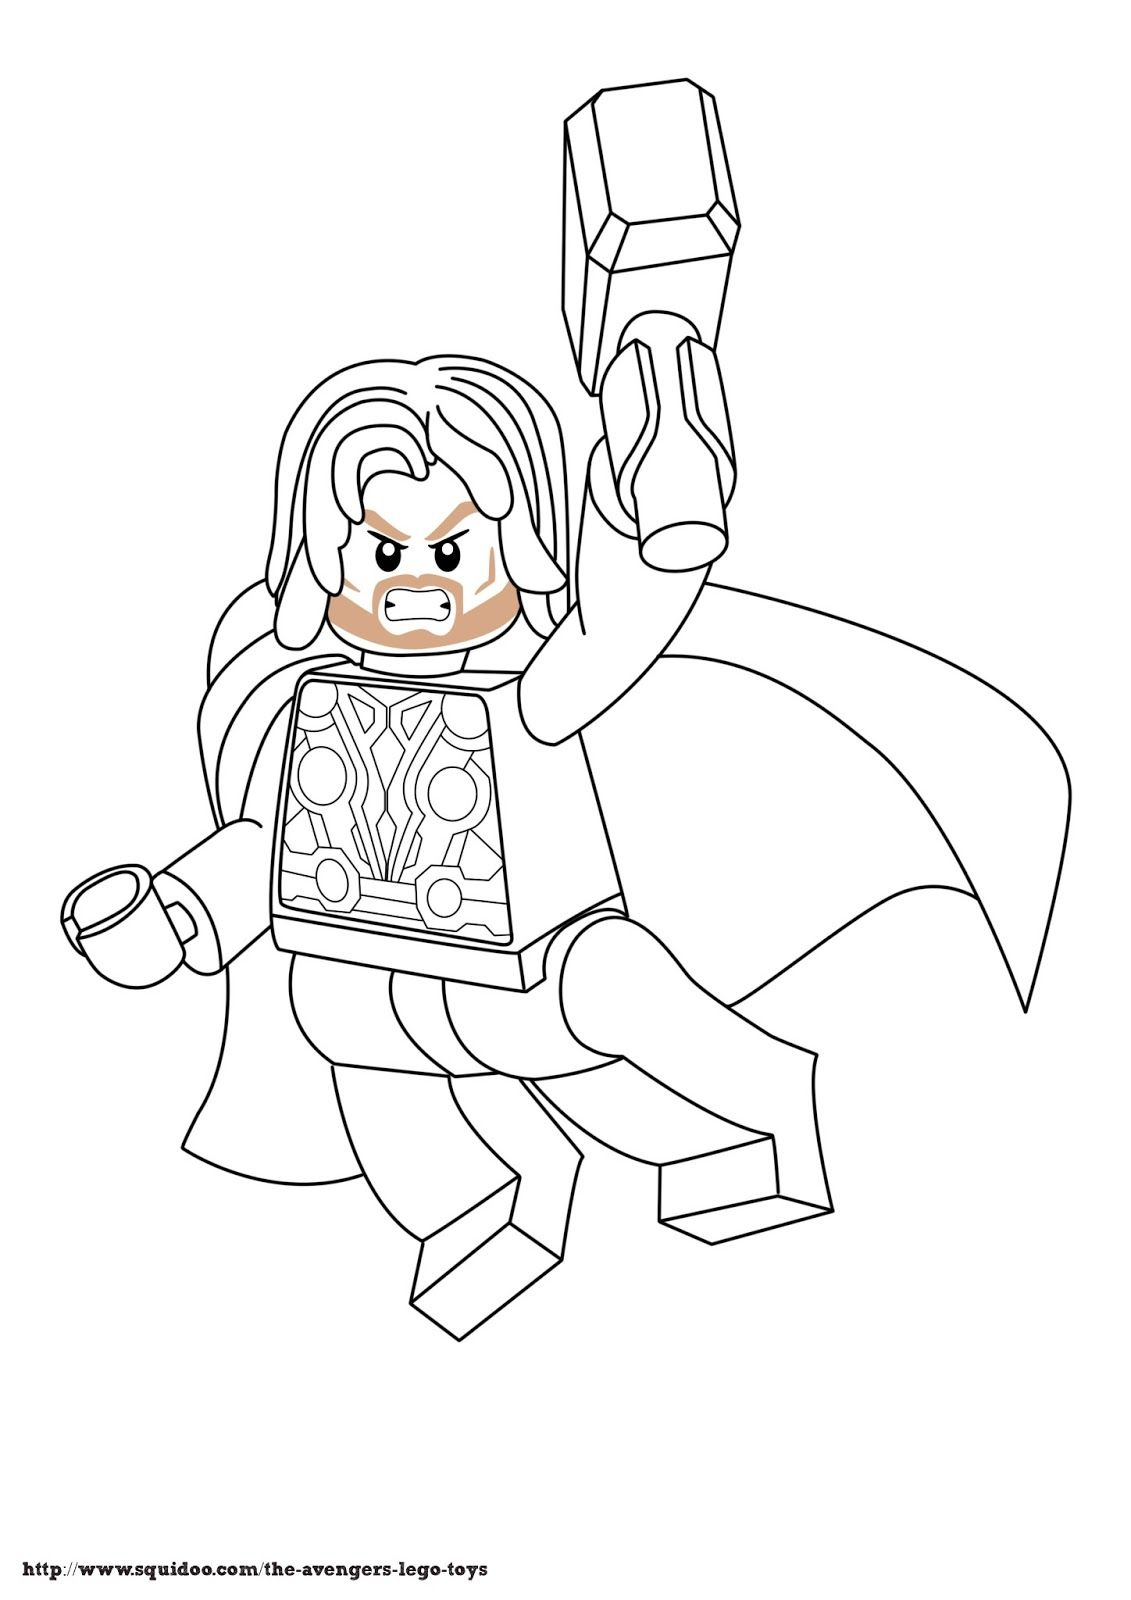 1131x1600 Avenger Lego Coloring Page Thorjpg Ferris Only